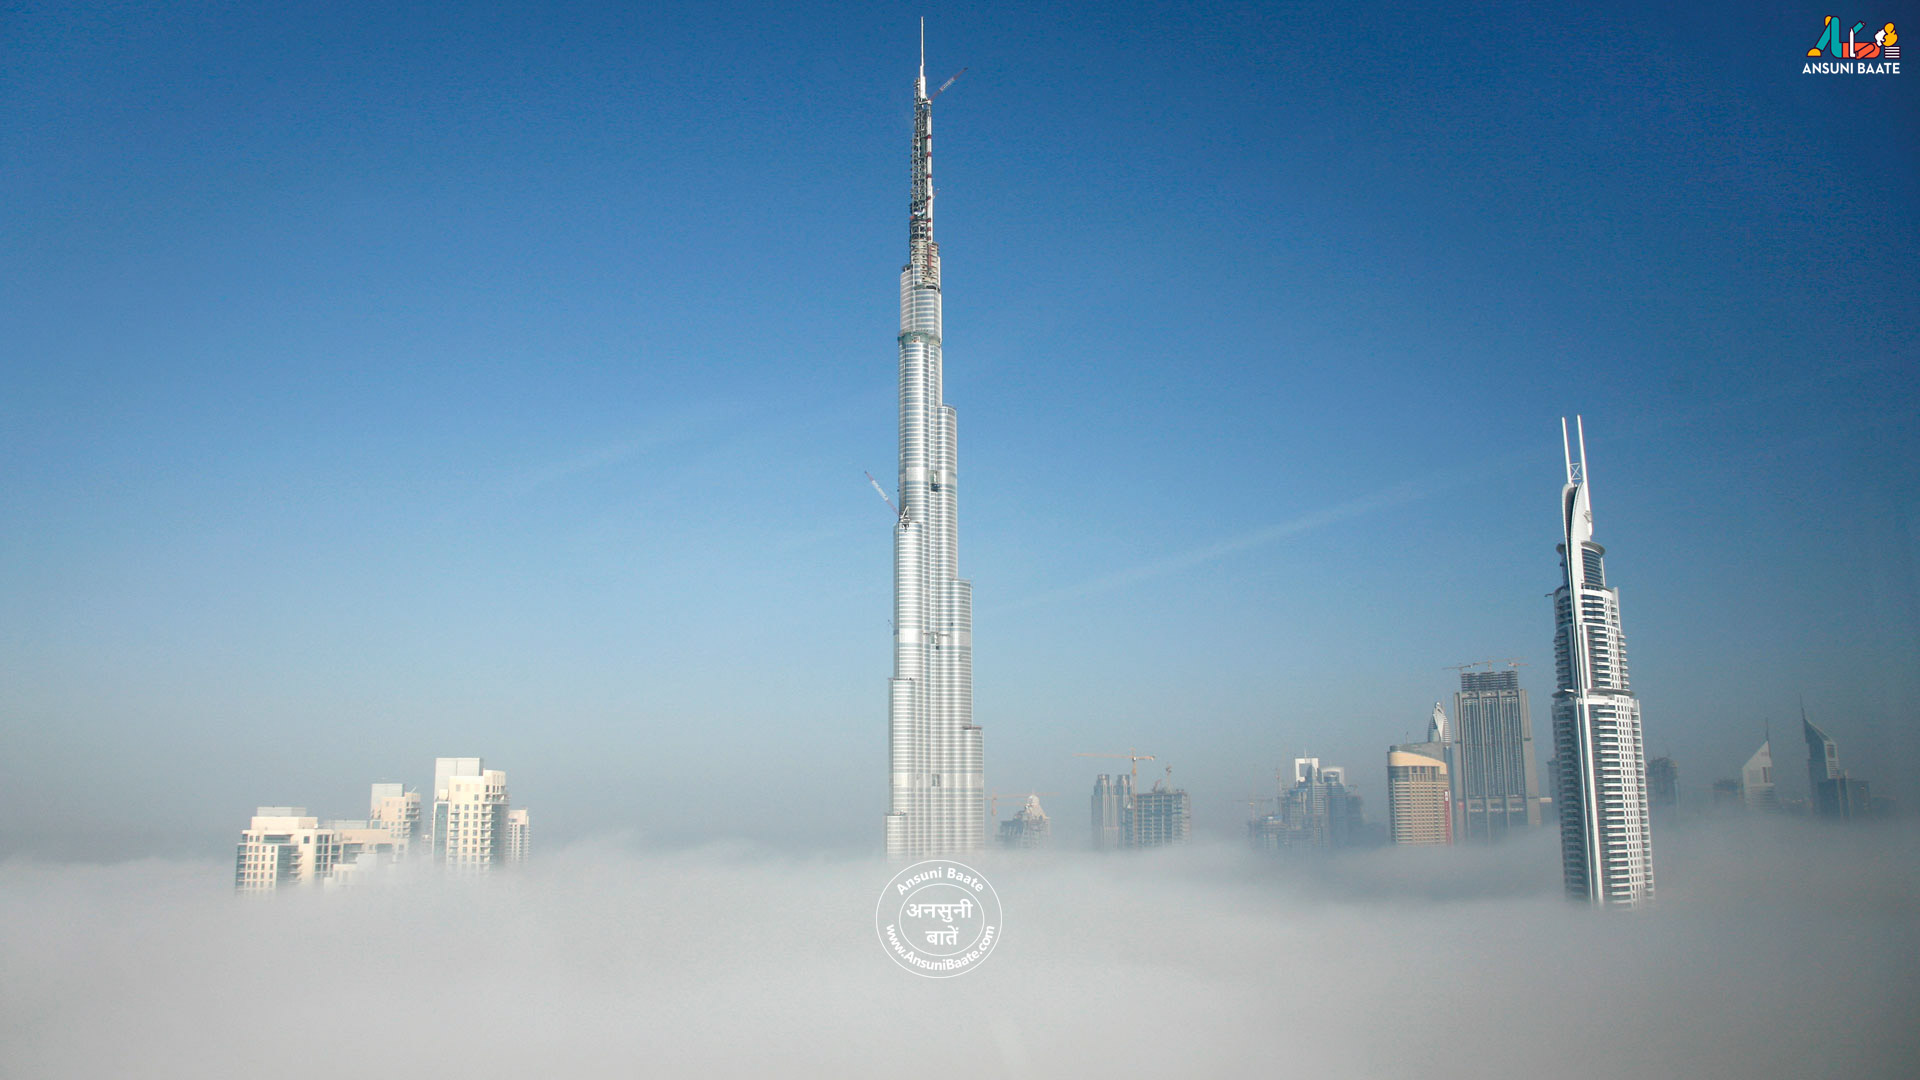 Burj khalifa Images Photo Wallpaper DownloadBurj khalifa Amazing Pics Download Burj khalifa HD Images For MobileBurj khalifa HD Images For Desktop